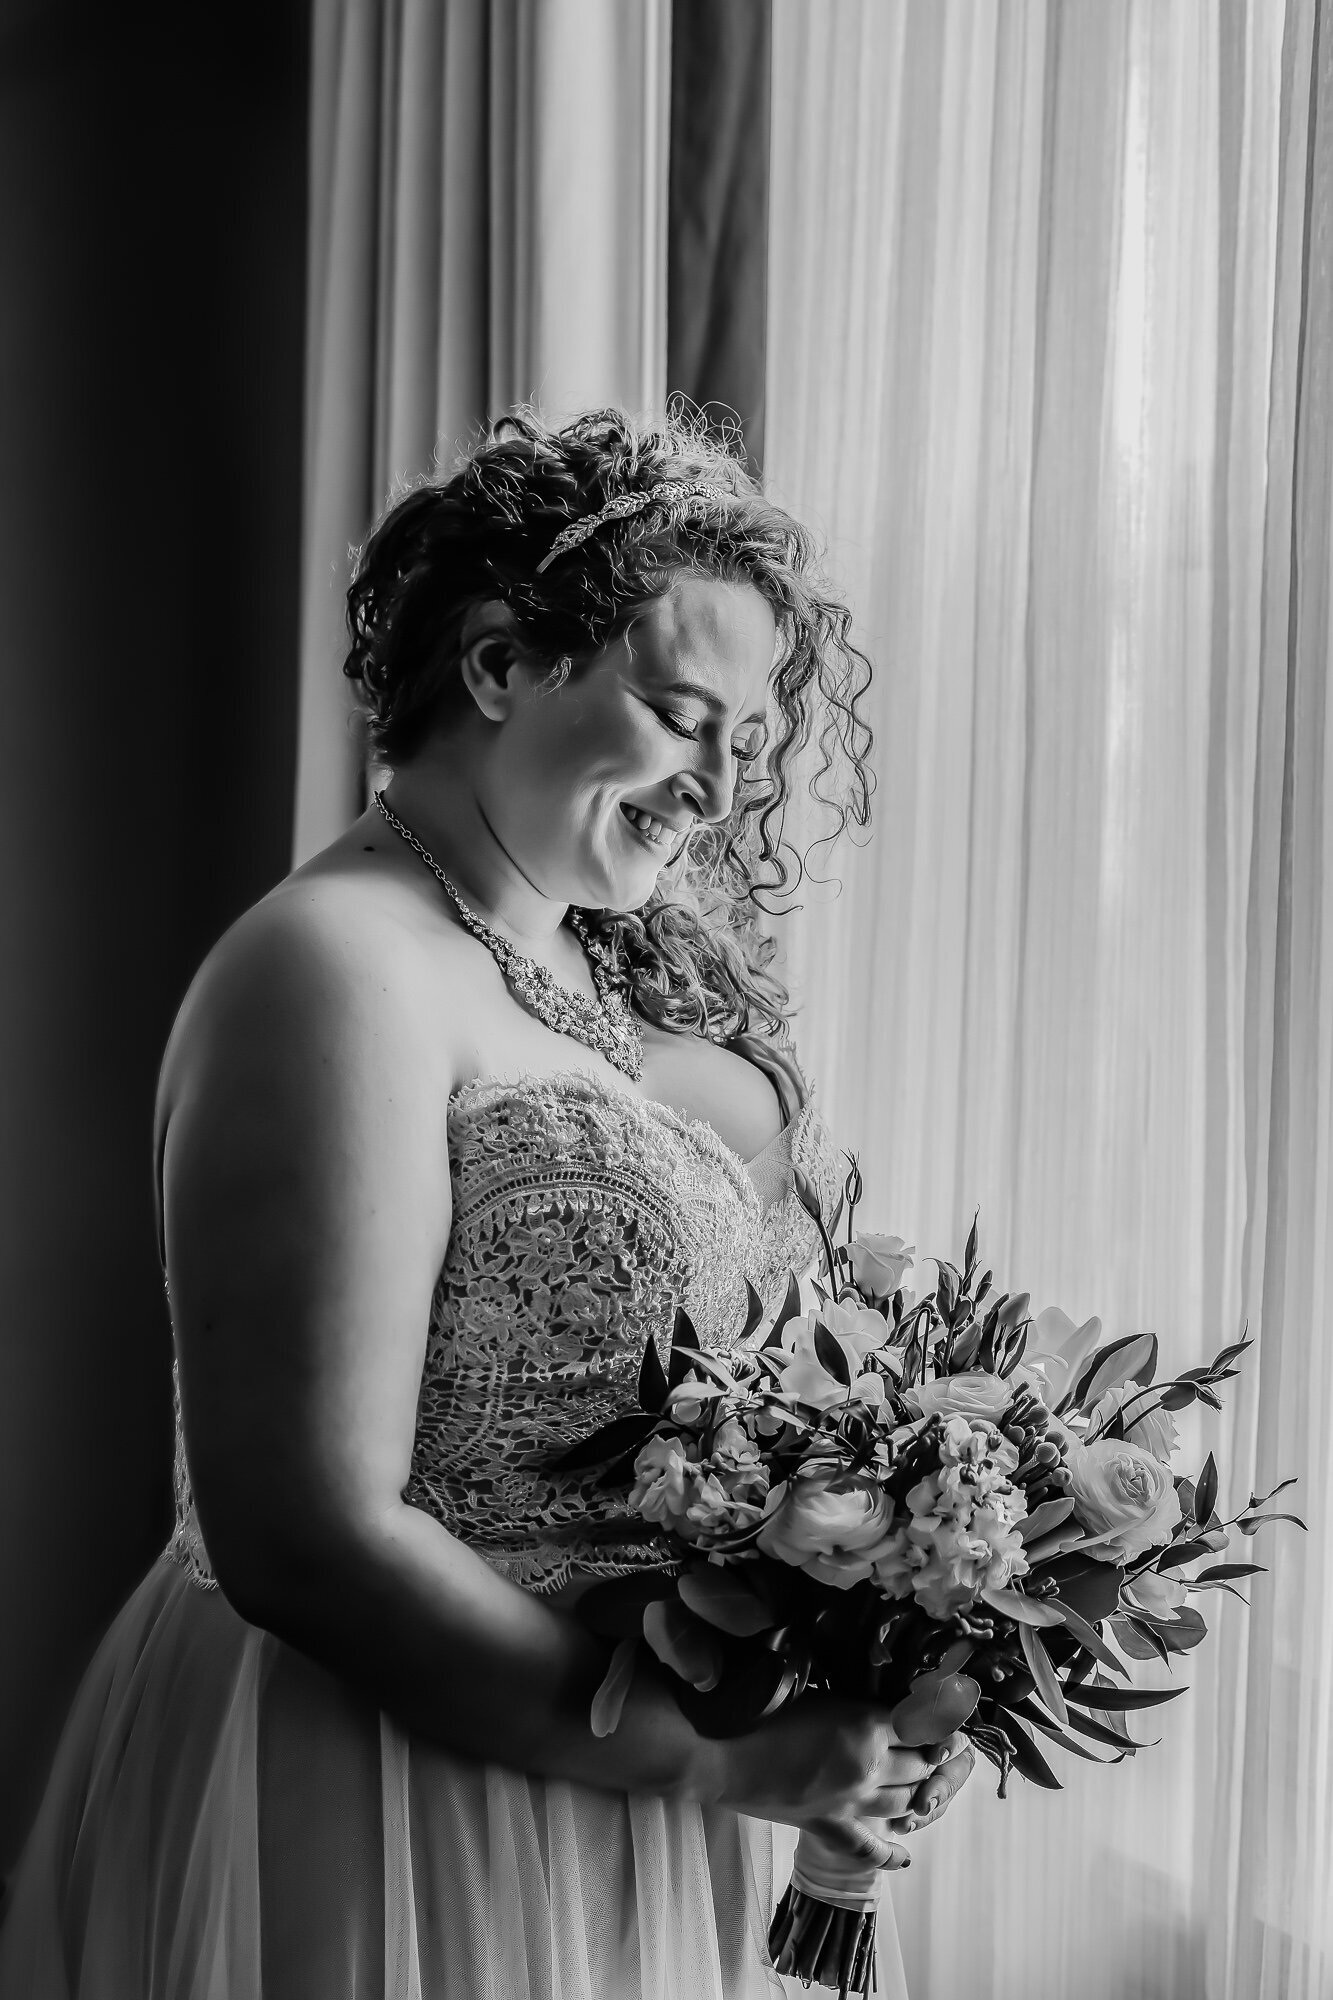 Black and white portrait of a smiling bride before her wedding